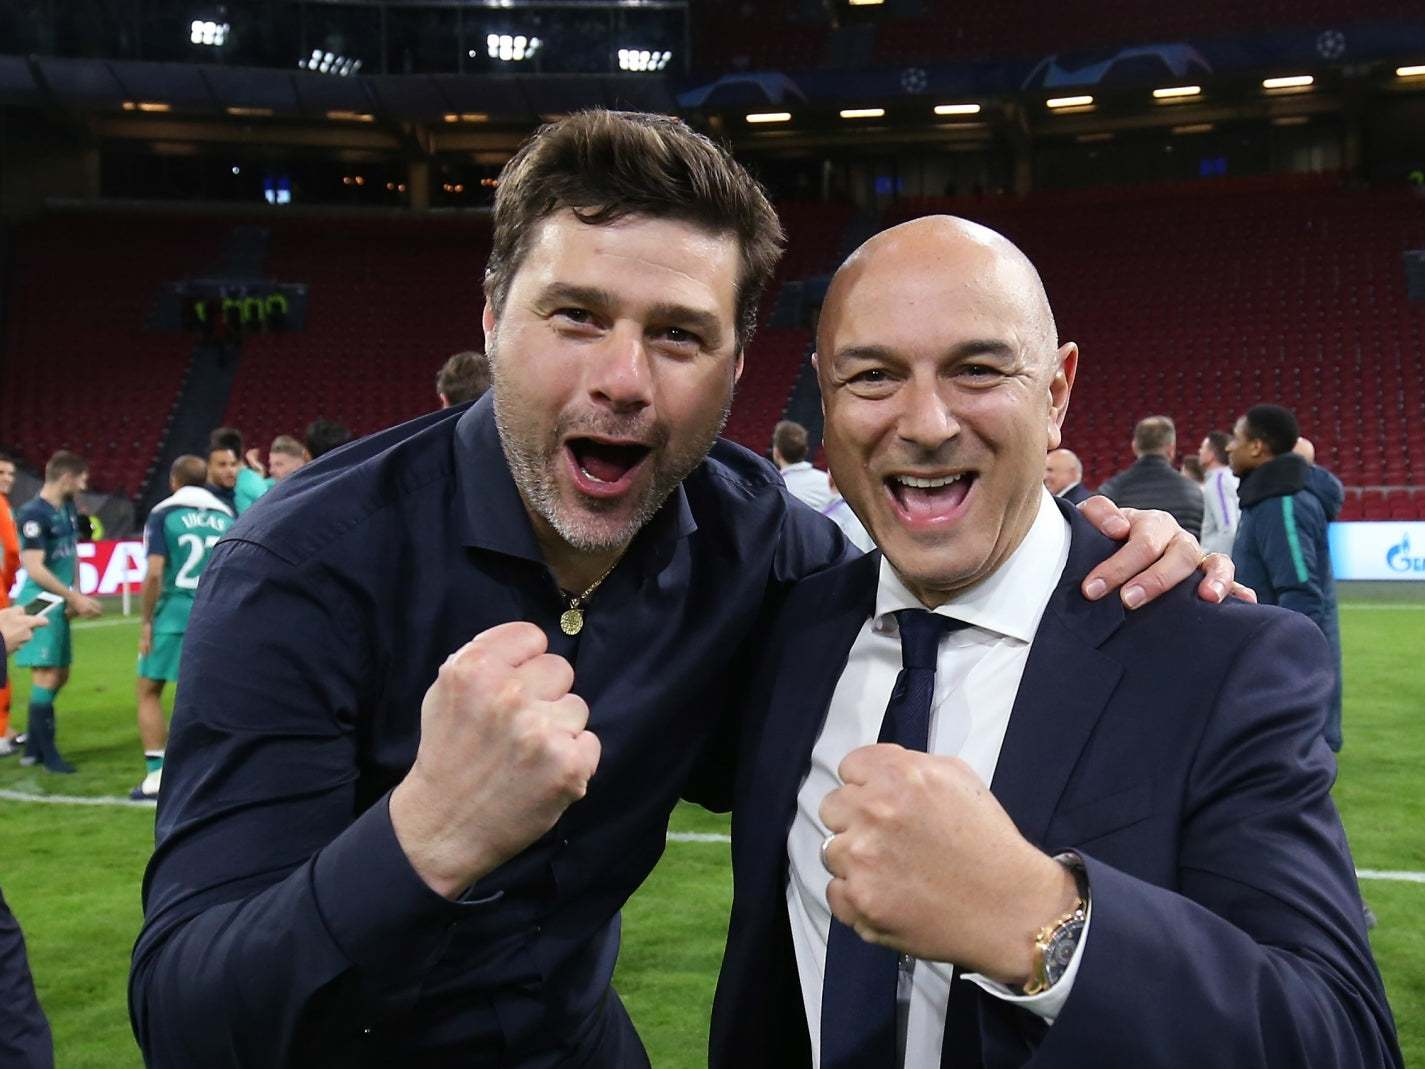 Champions League Final 2019 Mauricio Pochettino Reveals What Tottenham Chief Daniel Levy Told Players In Emotional Speech Ahead Of Liverpool Match The Independent The Independent